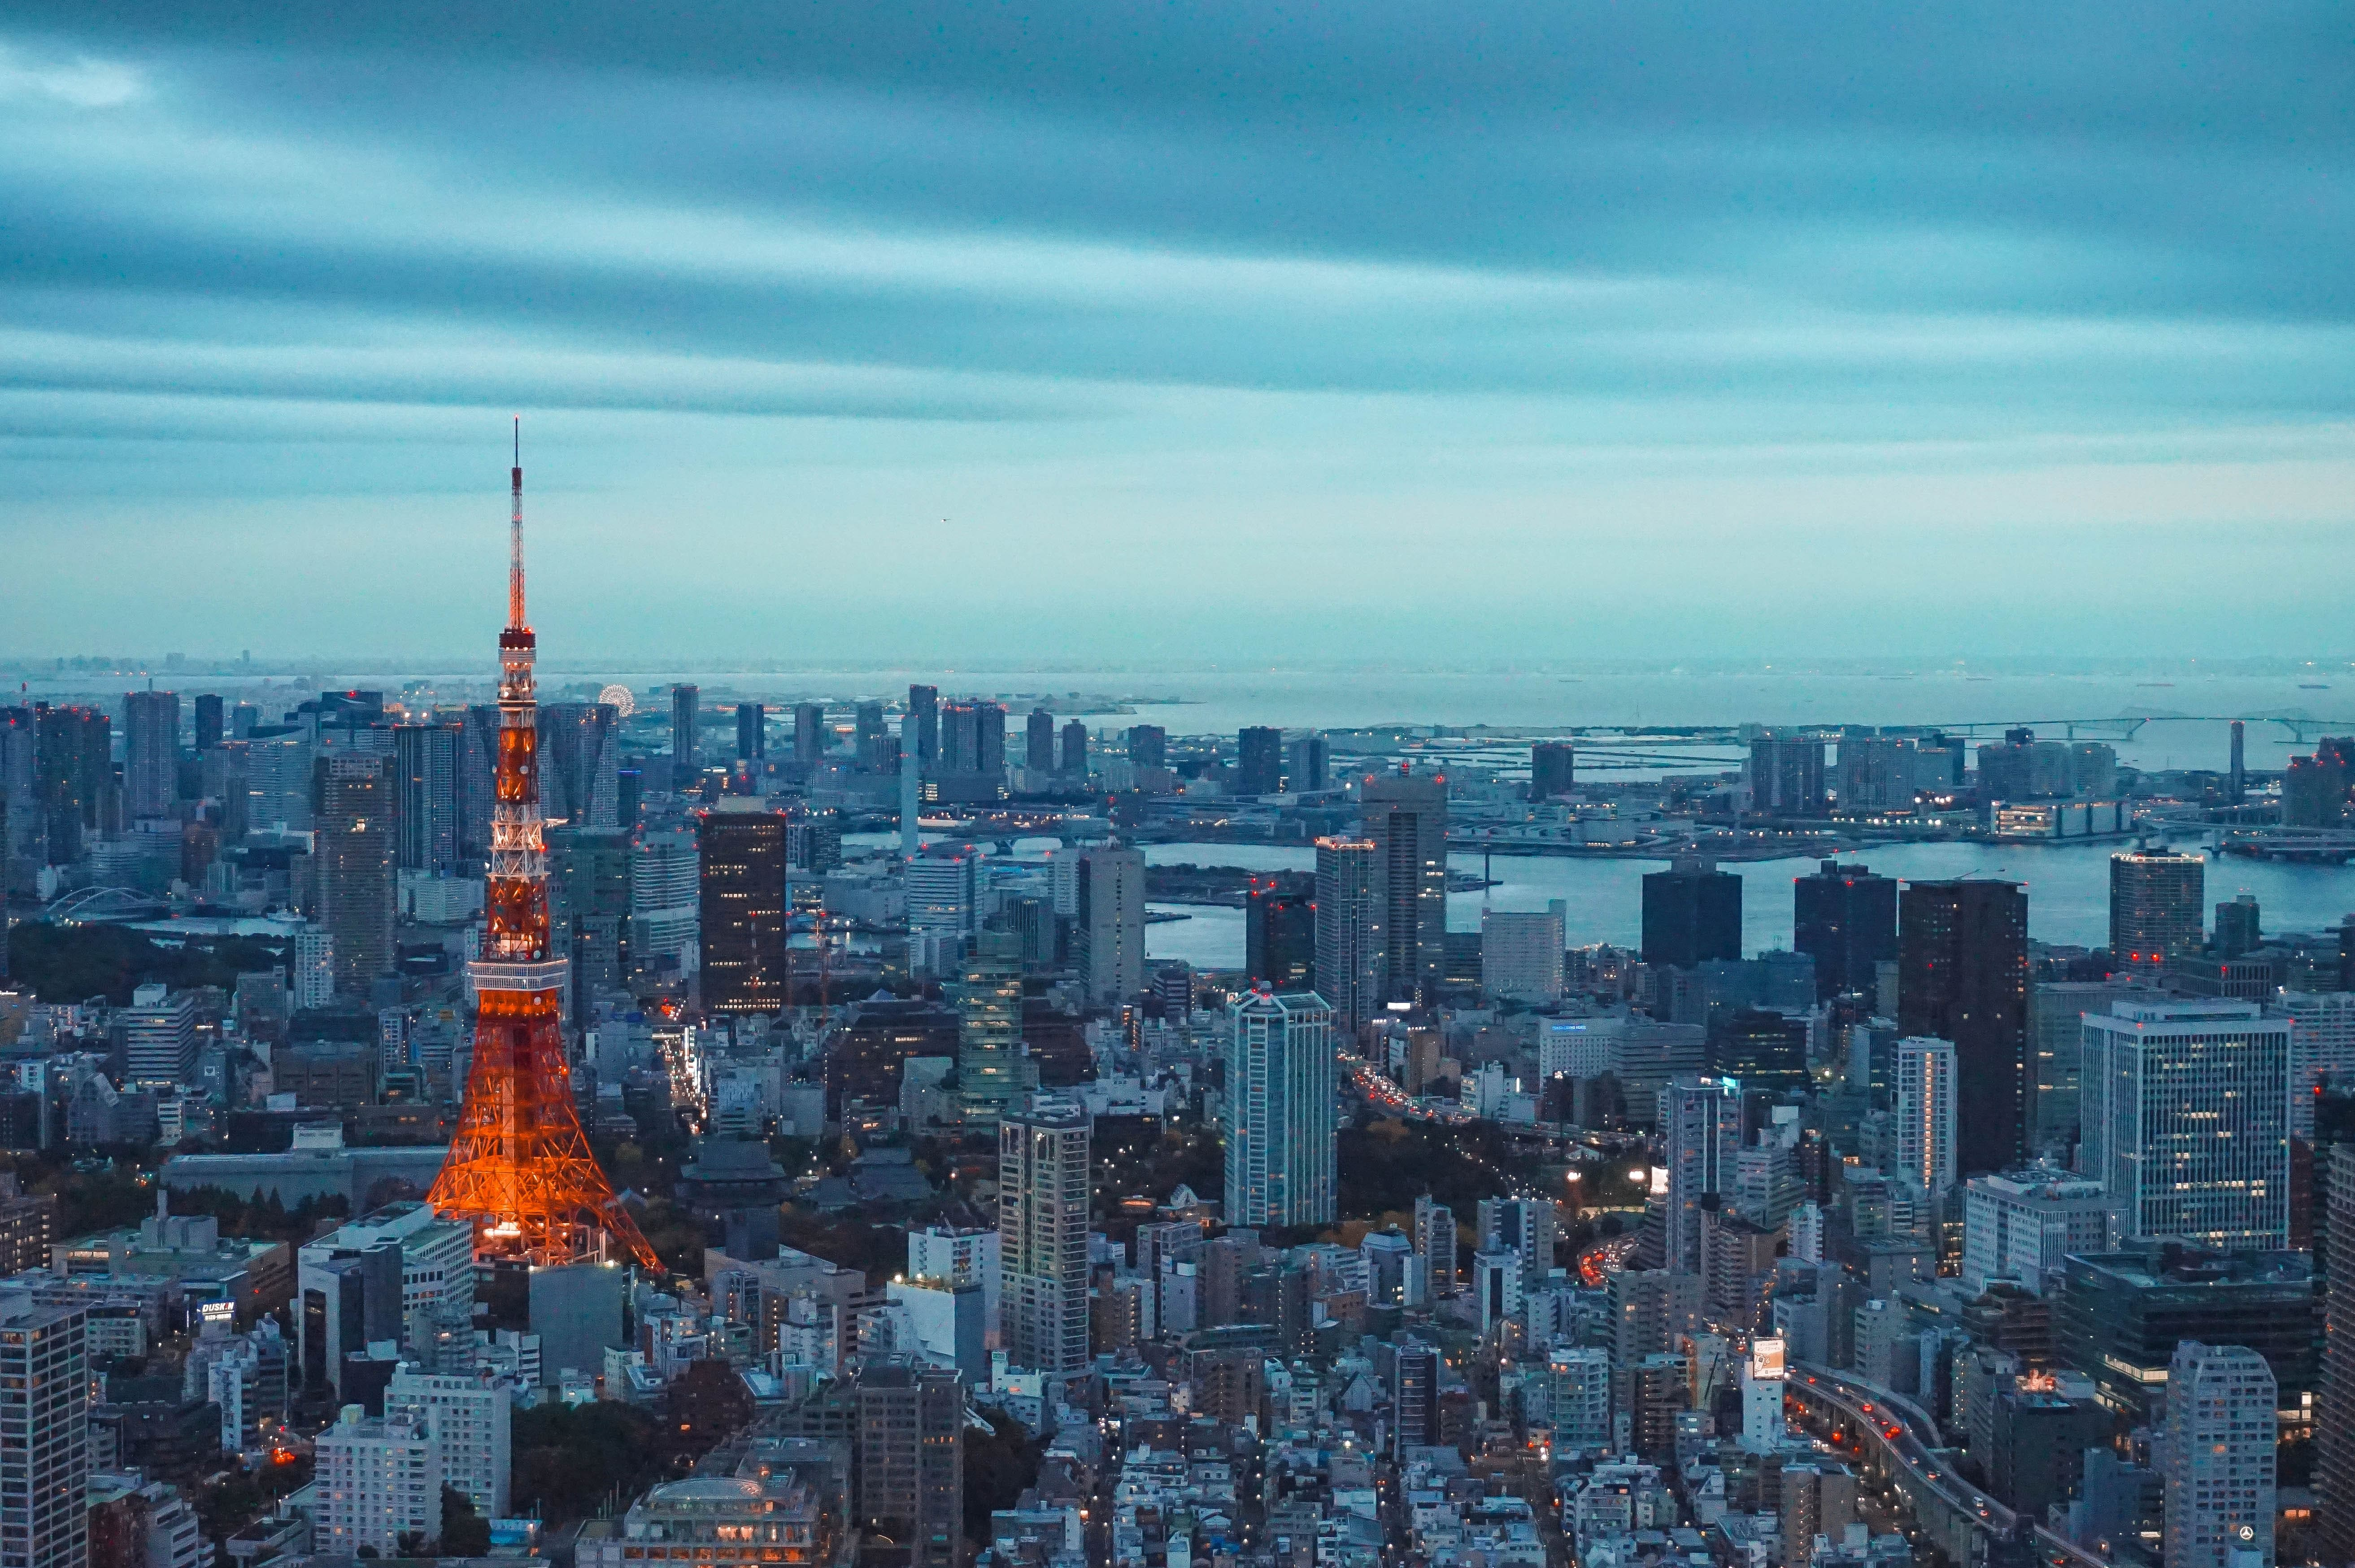 The bright red Tokyo tower is one of Tokyo's top points of interest